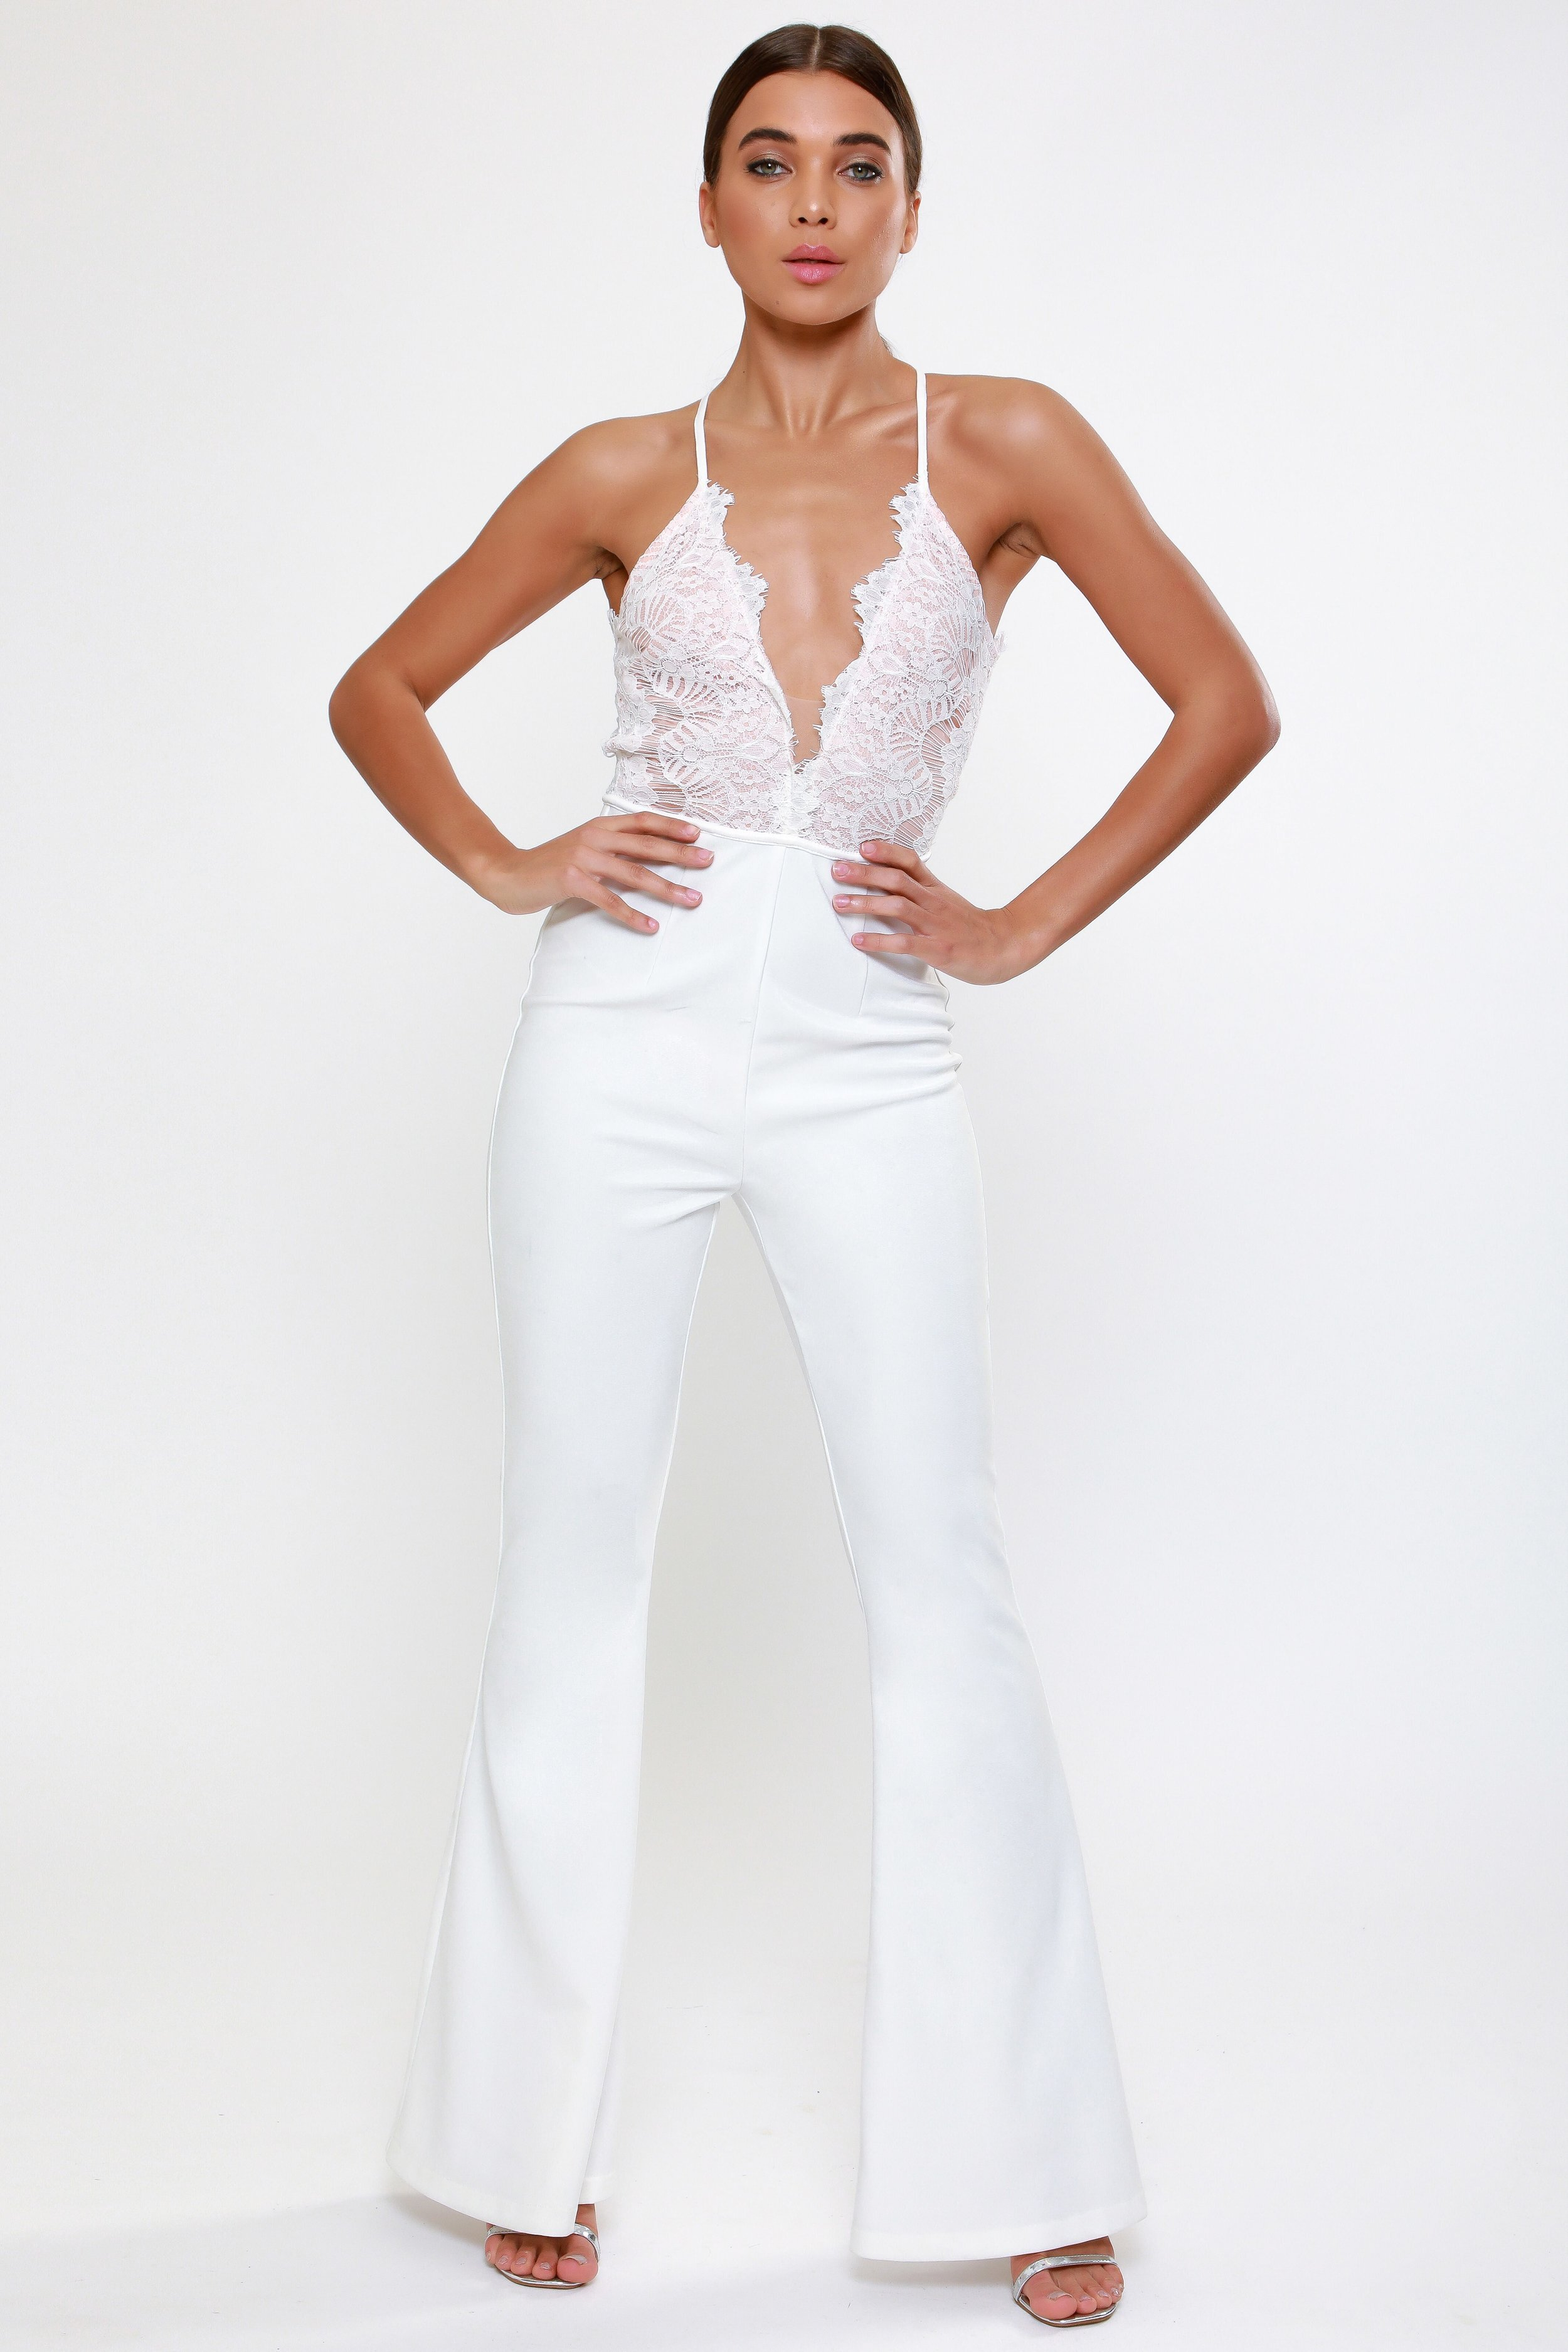 Eyelash Lace Flared Leg Jumpsuit   £72.00